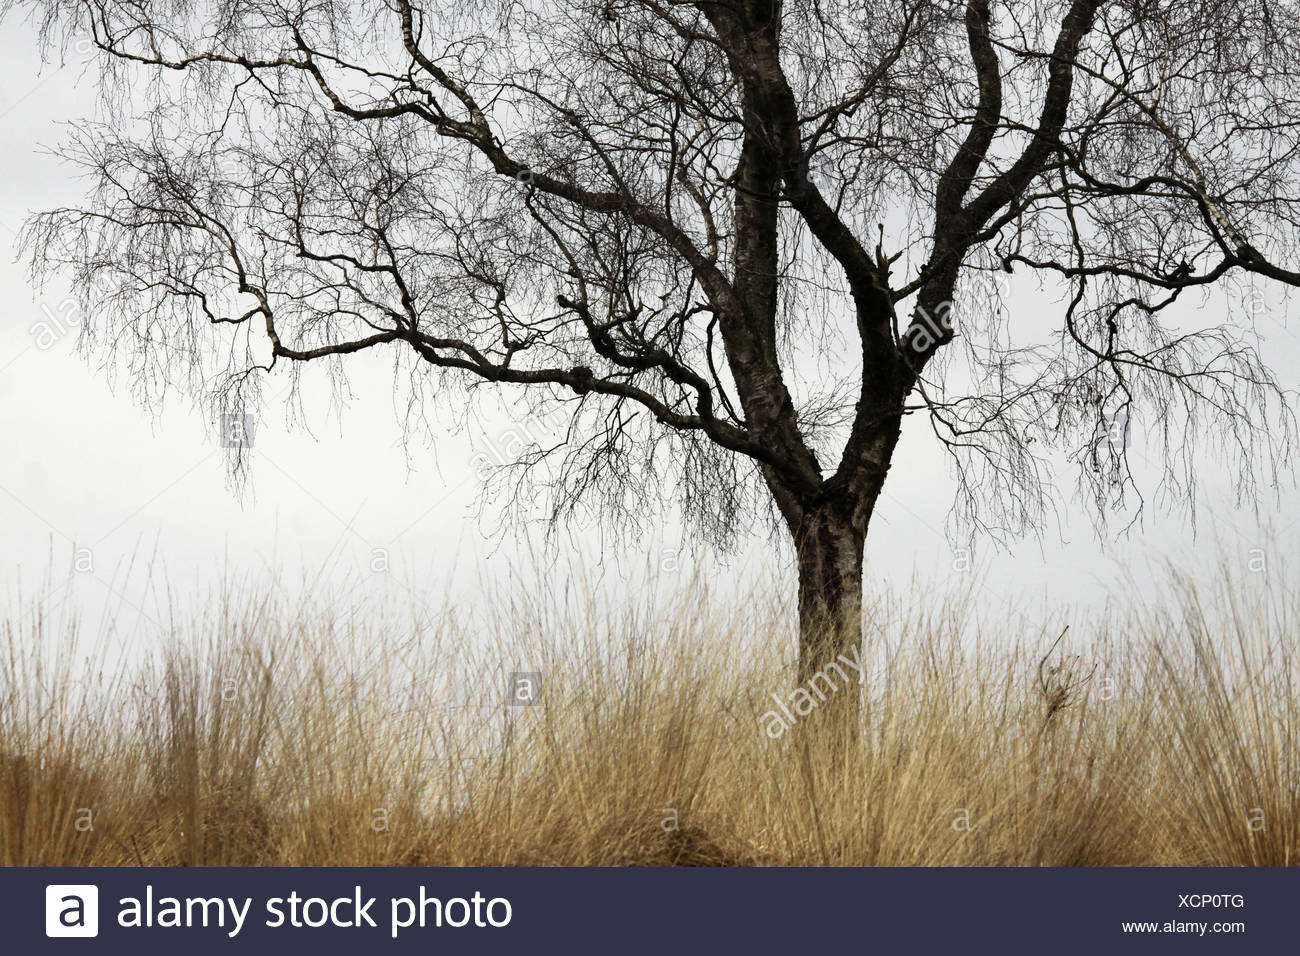 Detail of a Birch at winter. - Stock Image